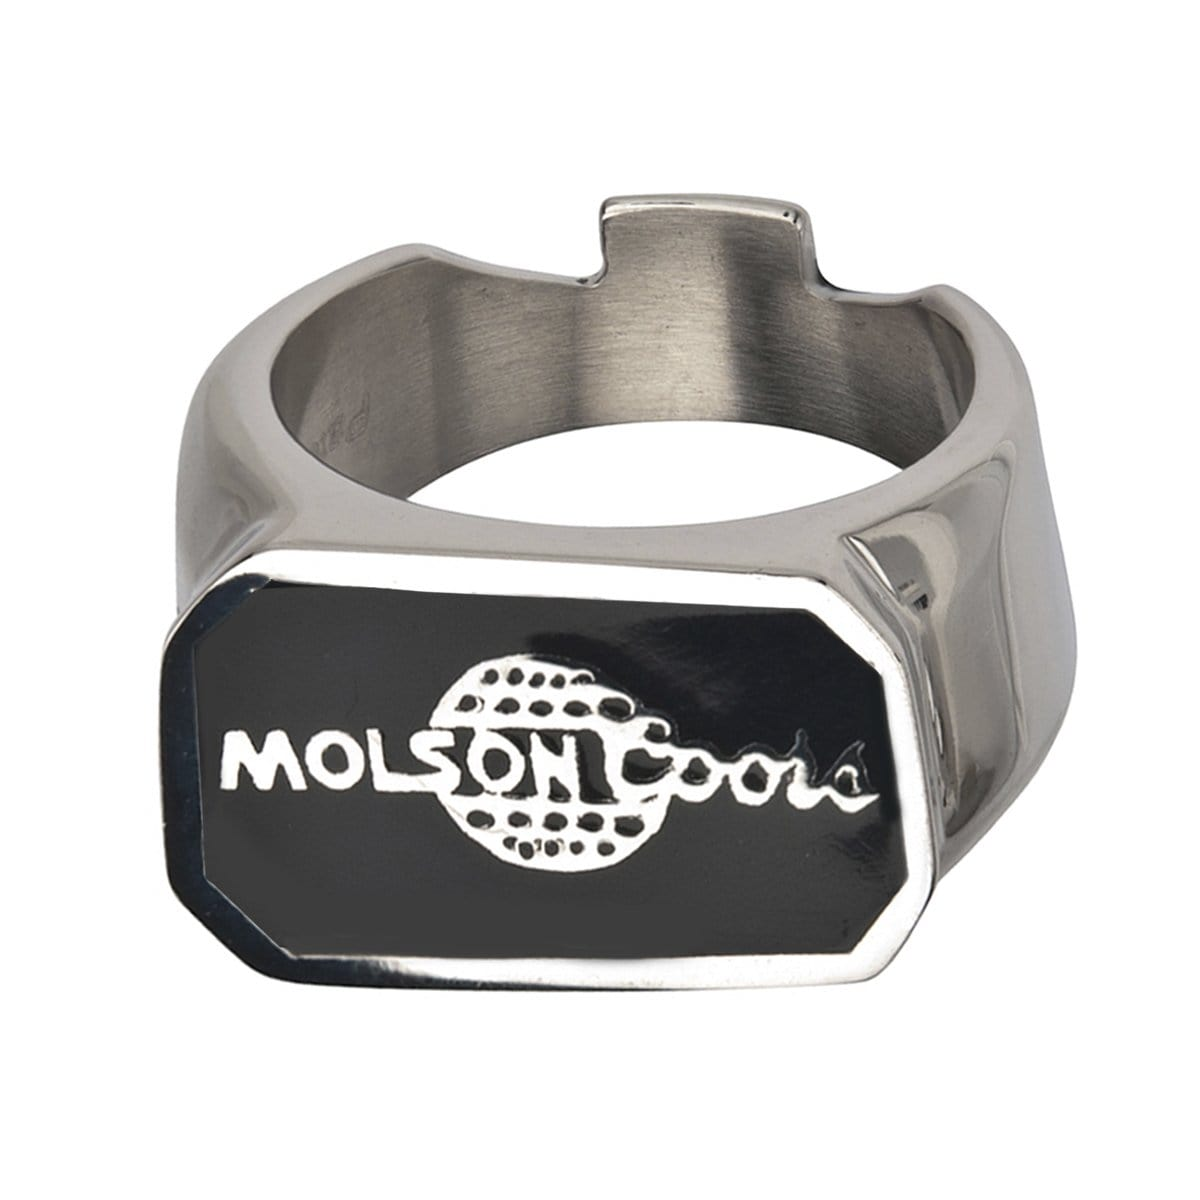 Black & Silver Stainless Steel Molsoncoors Bottle Opener Ring Rings